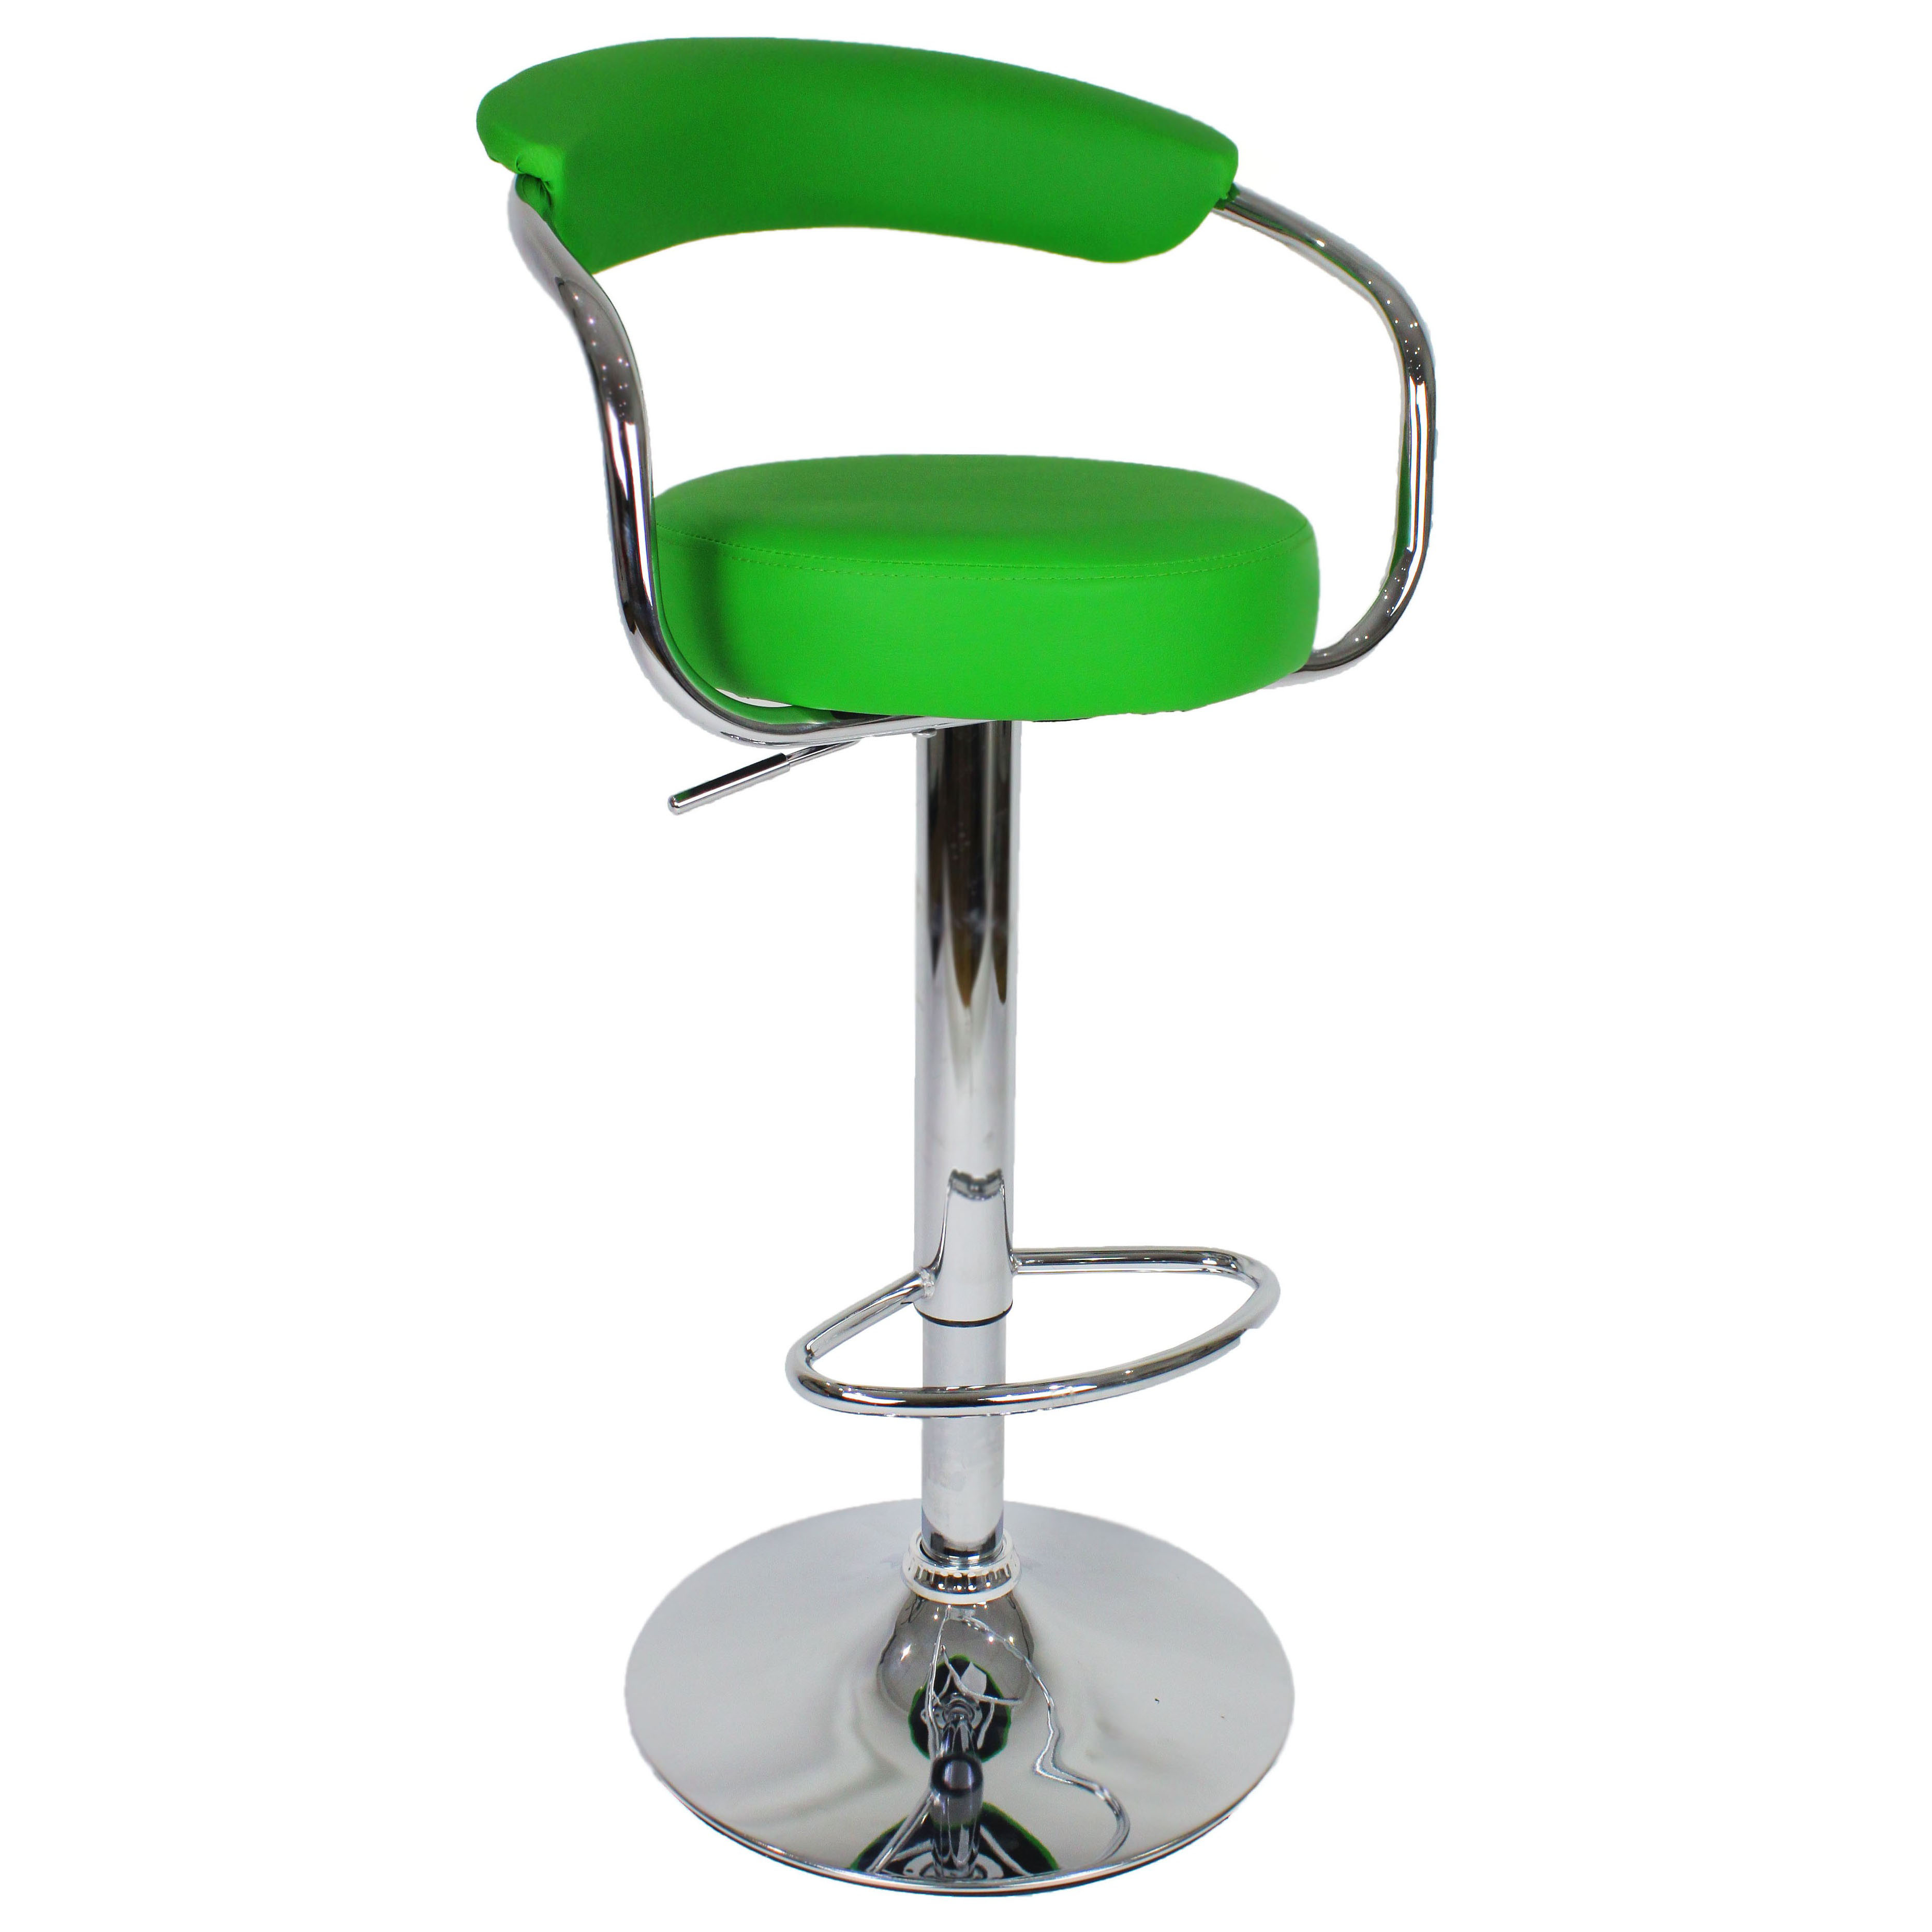 Zenith Bar Stool with Arms - Green